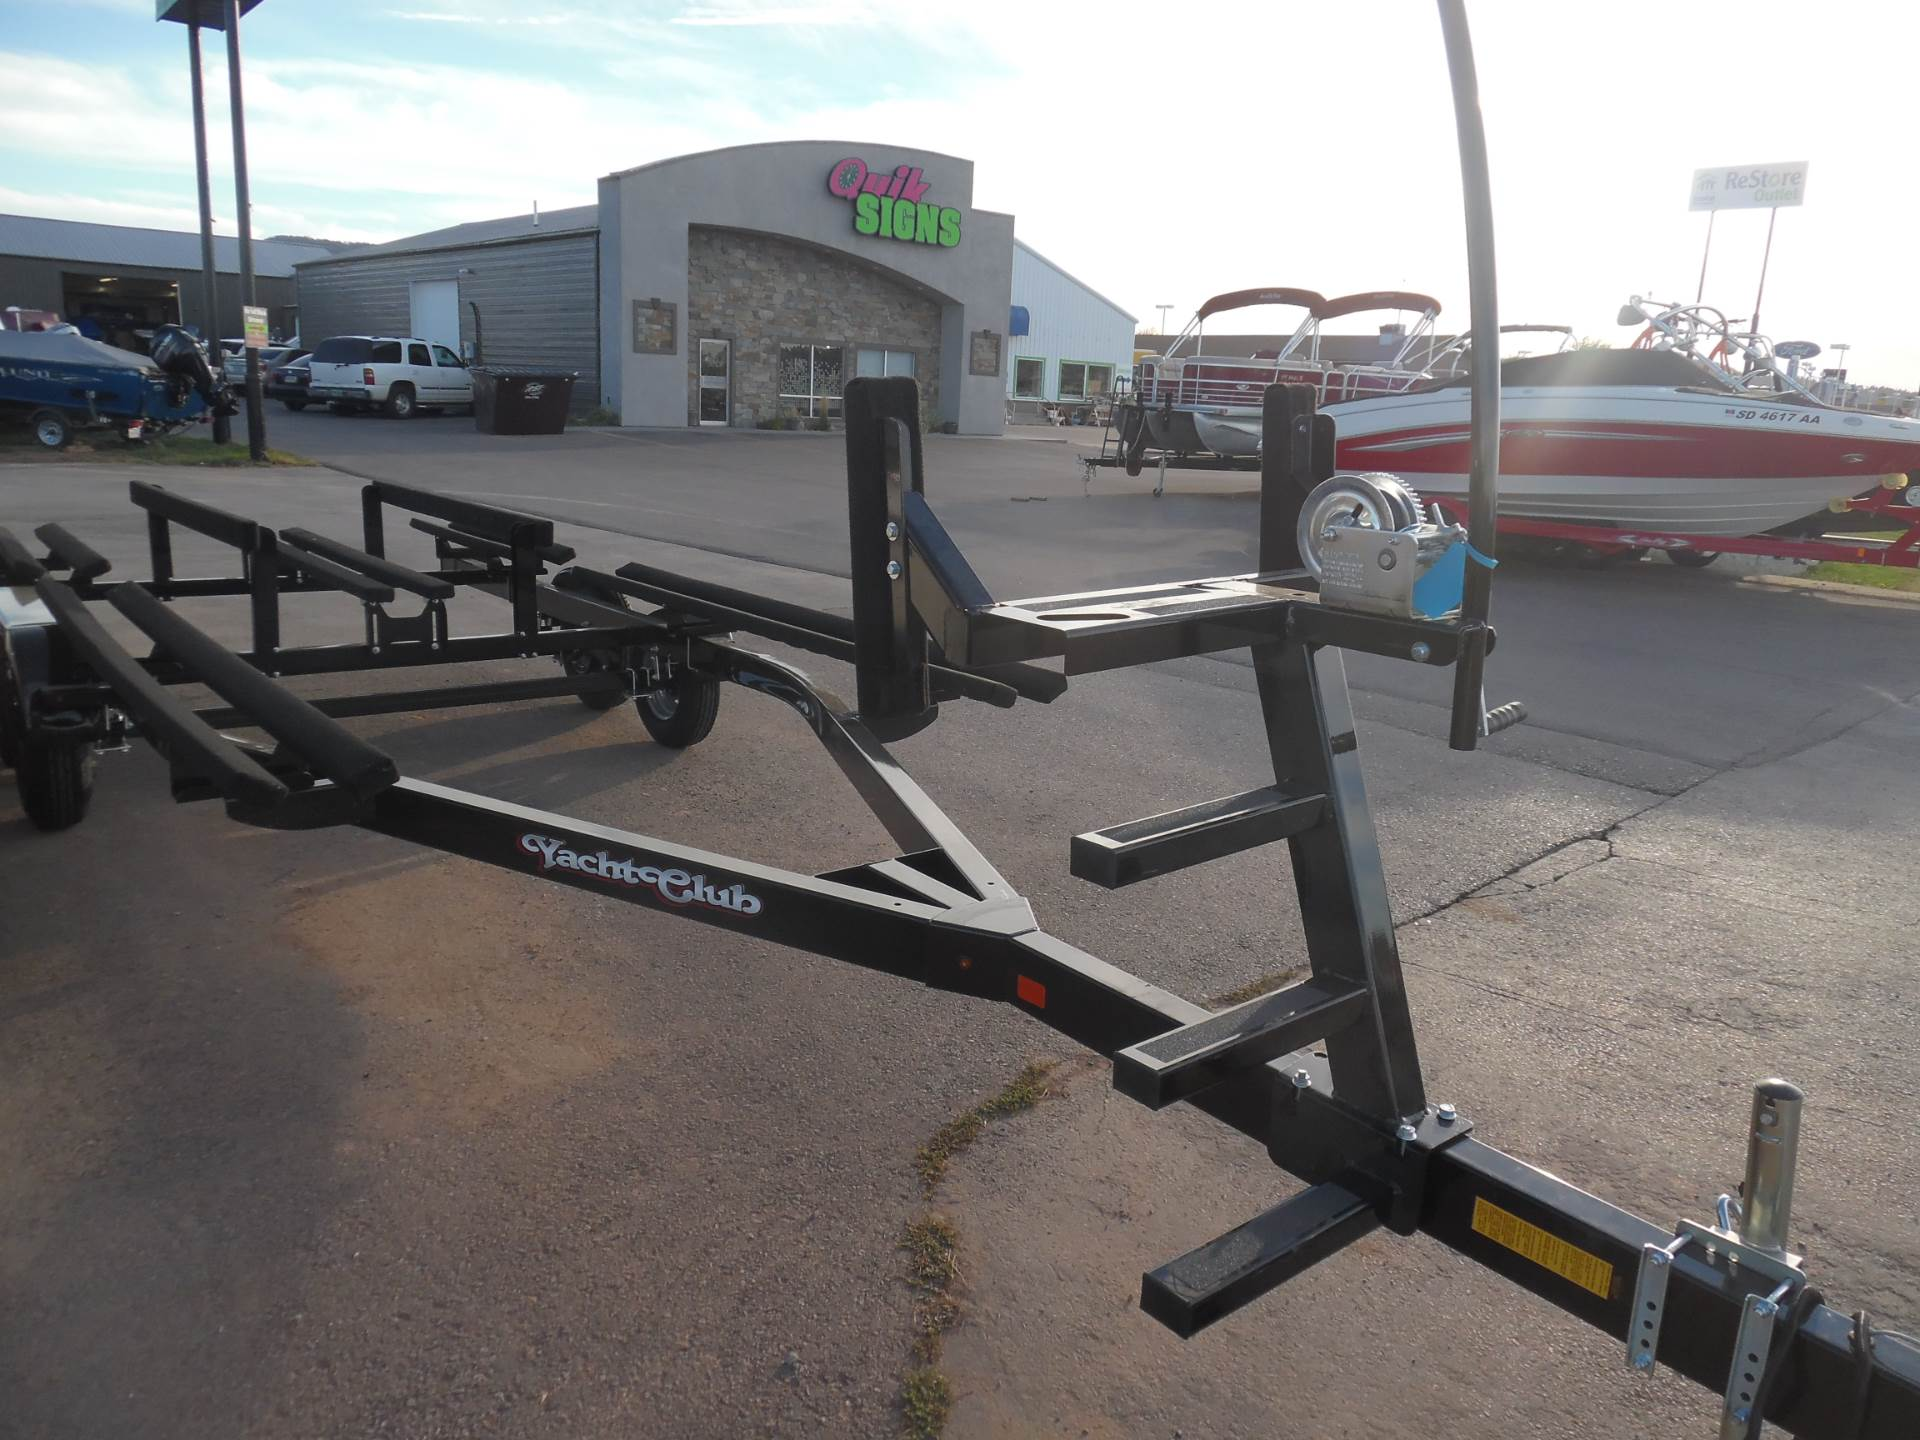 2021 Yacht Club Tandem Axle Pontoon Trailers for 18'-28' pontoons and tri-toons! in Spearfish, South Dakota - Photo 1